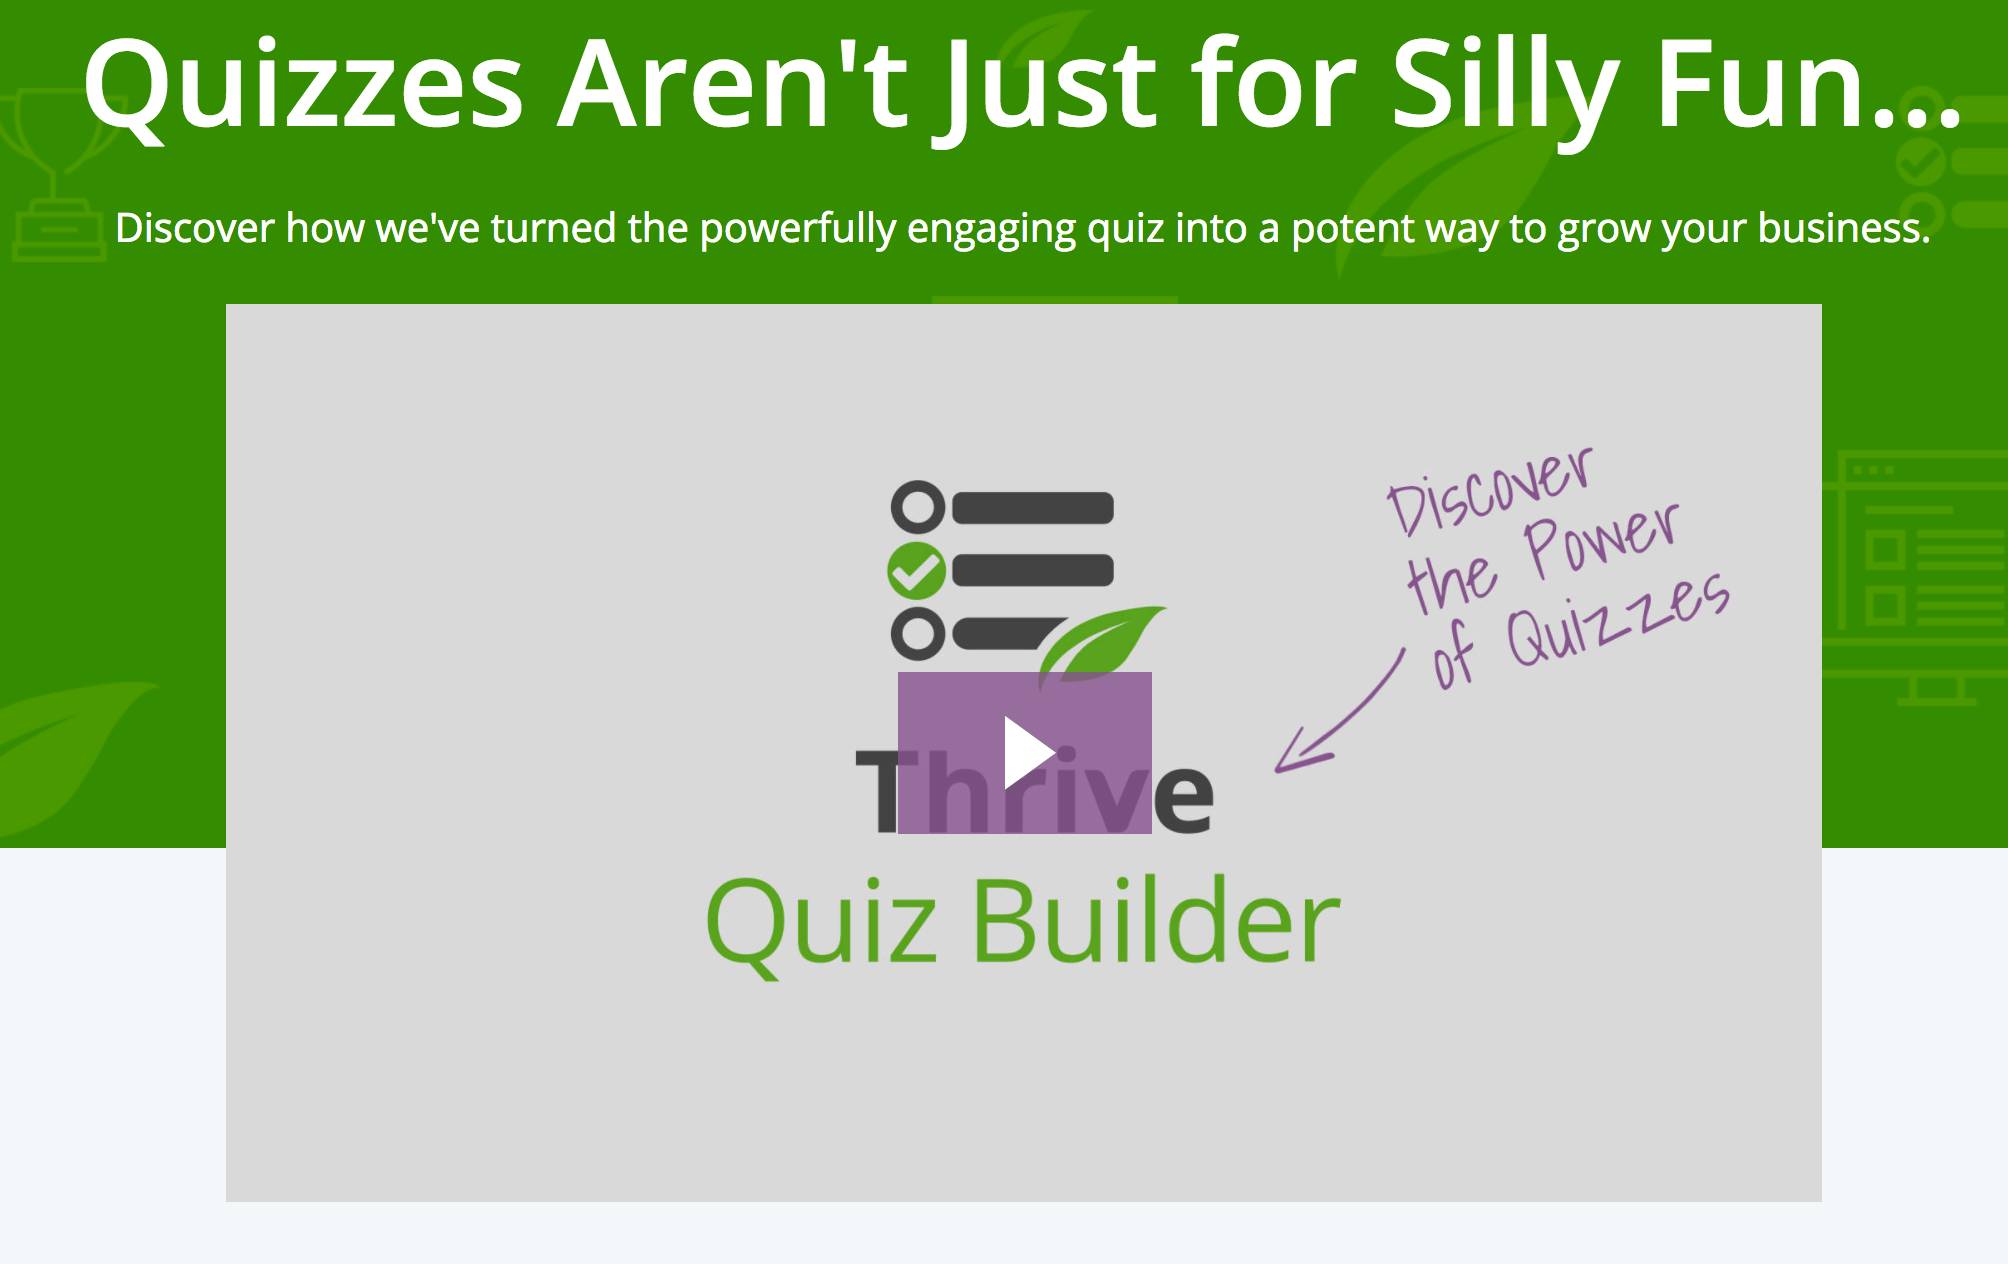 How To Use Quizzes To Cash In